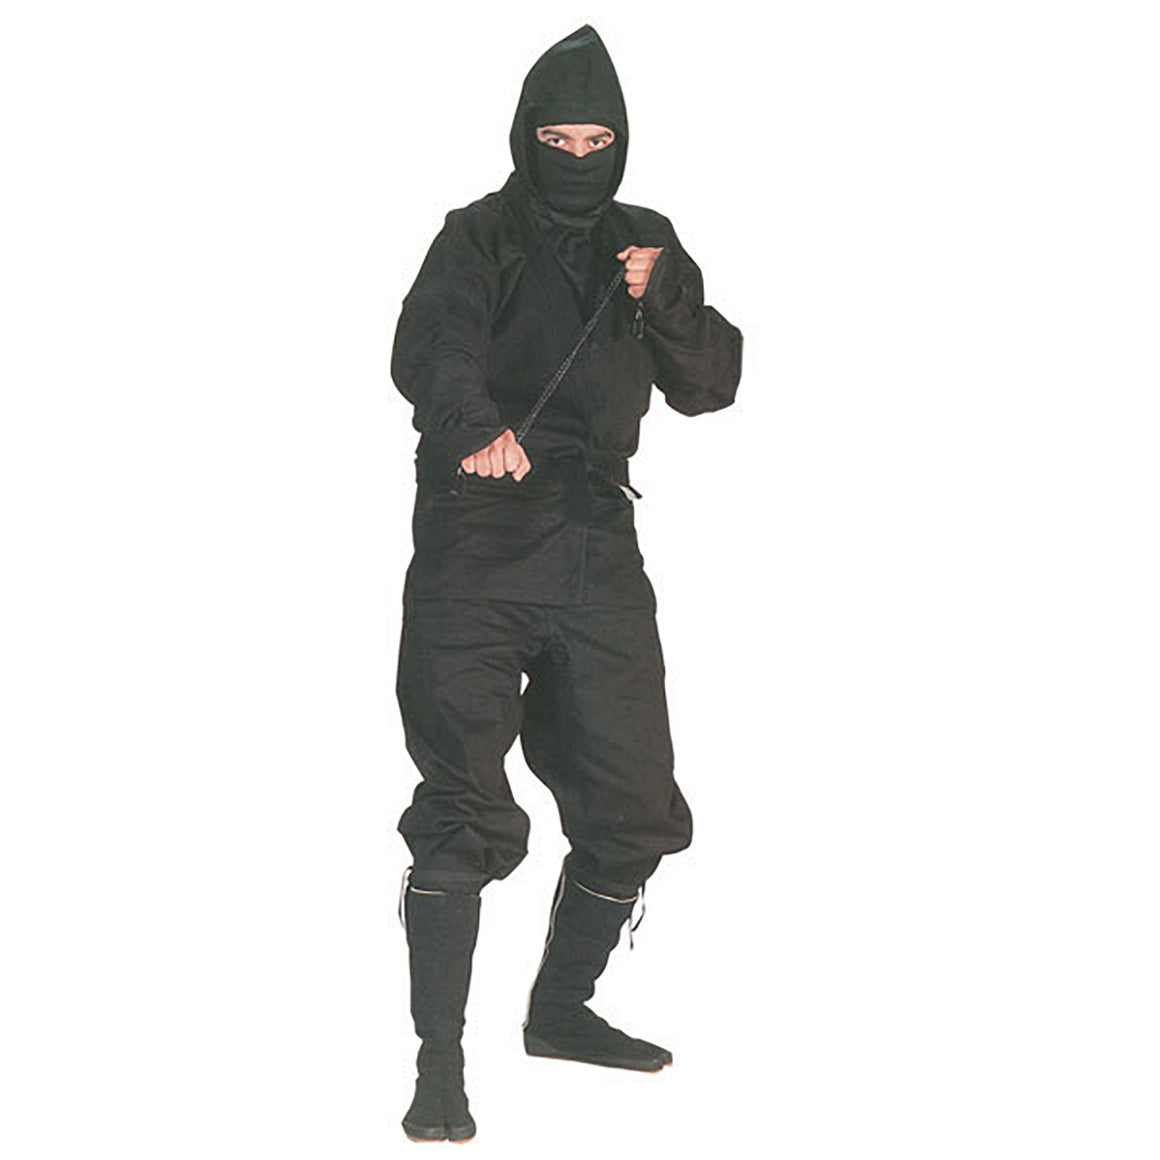 201XS-BLK Ninja Uniform